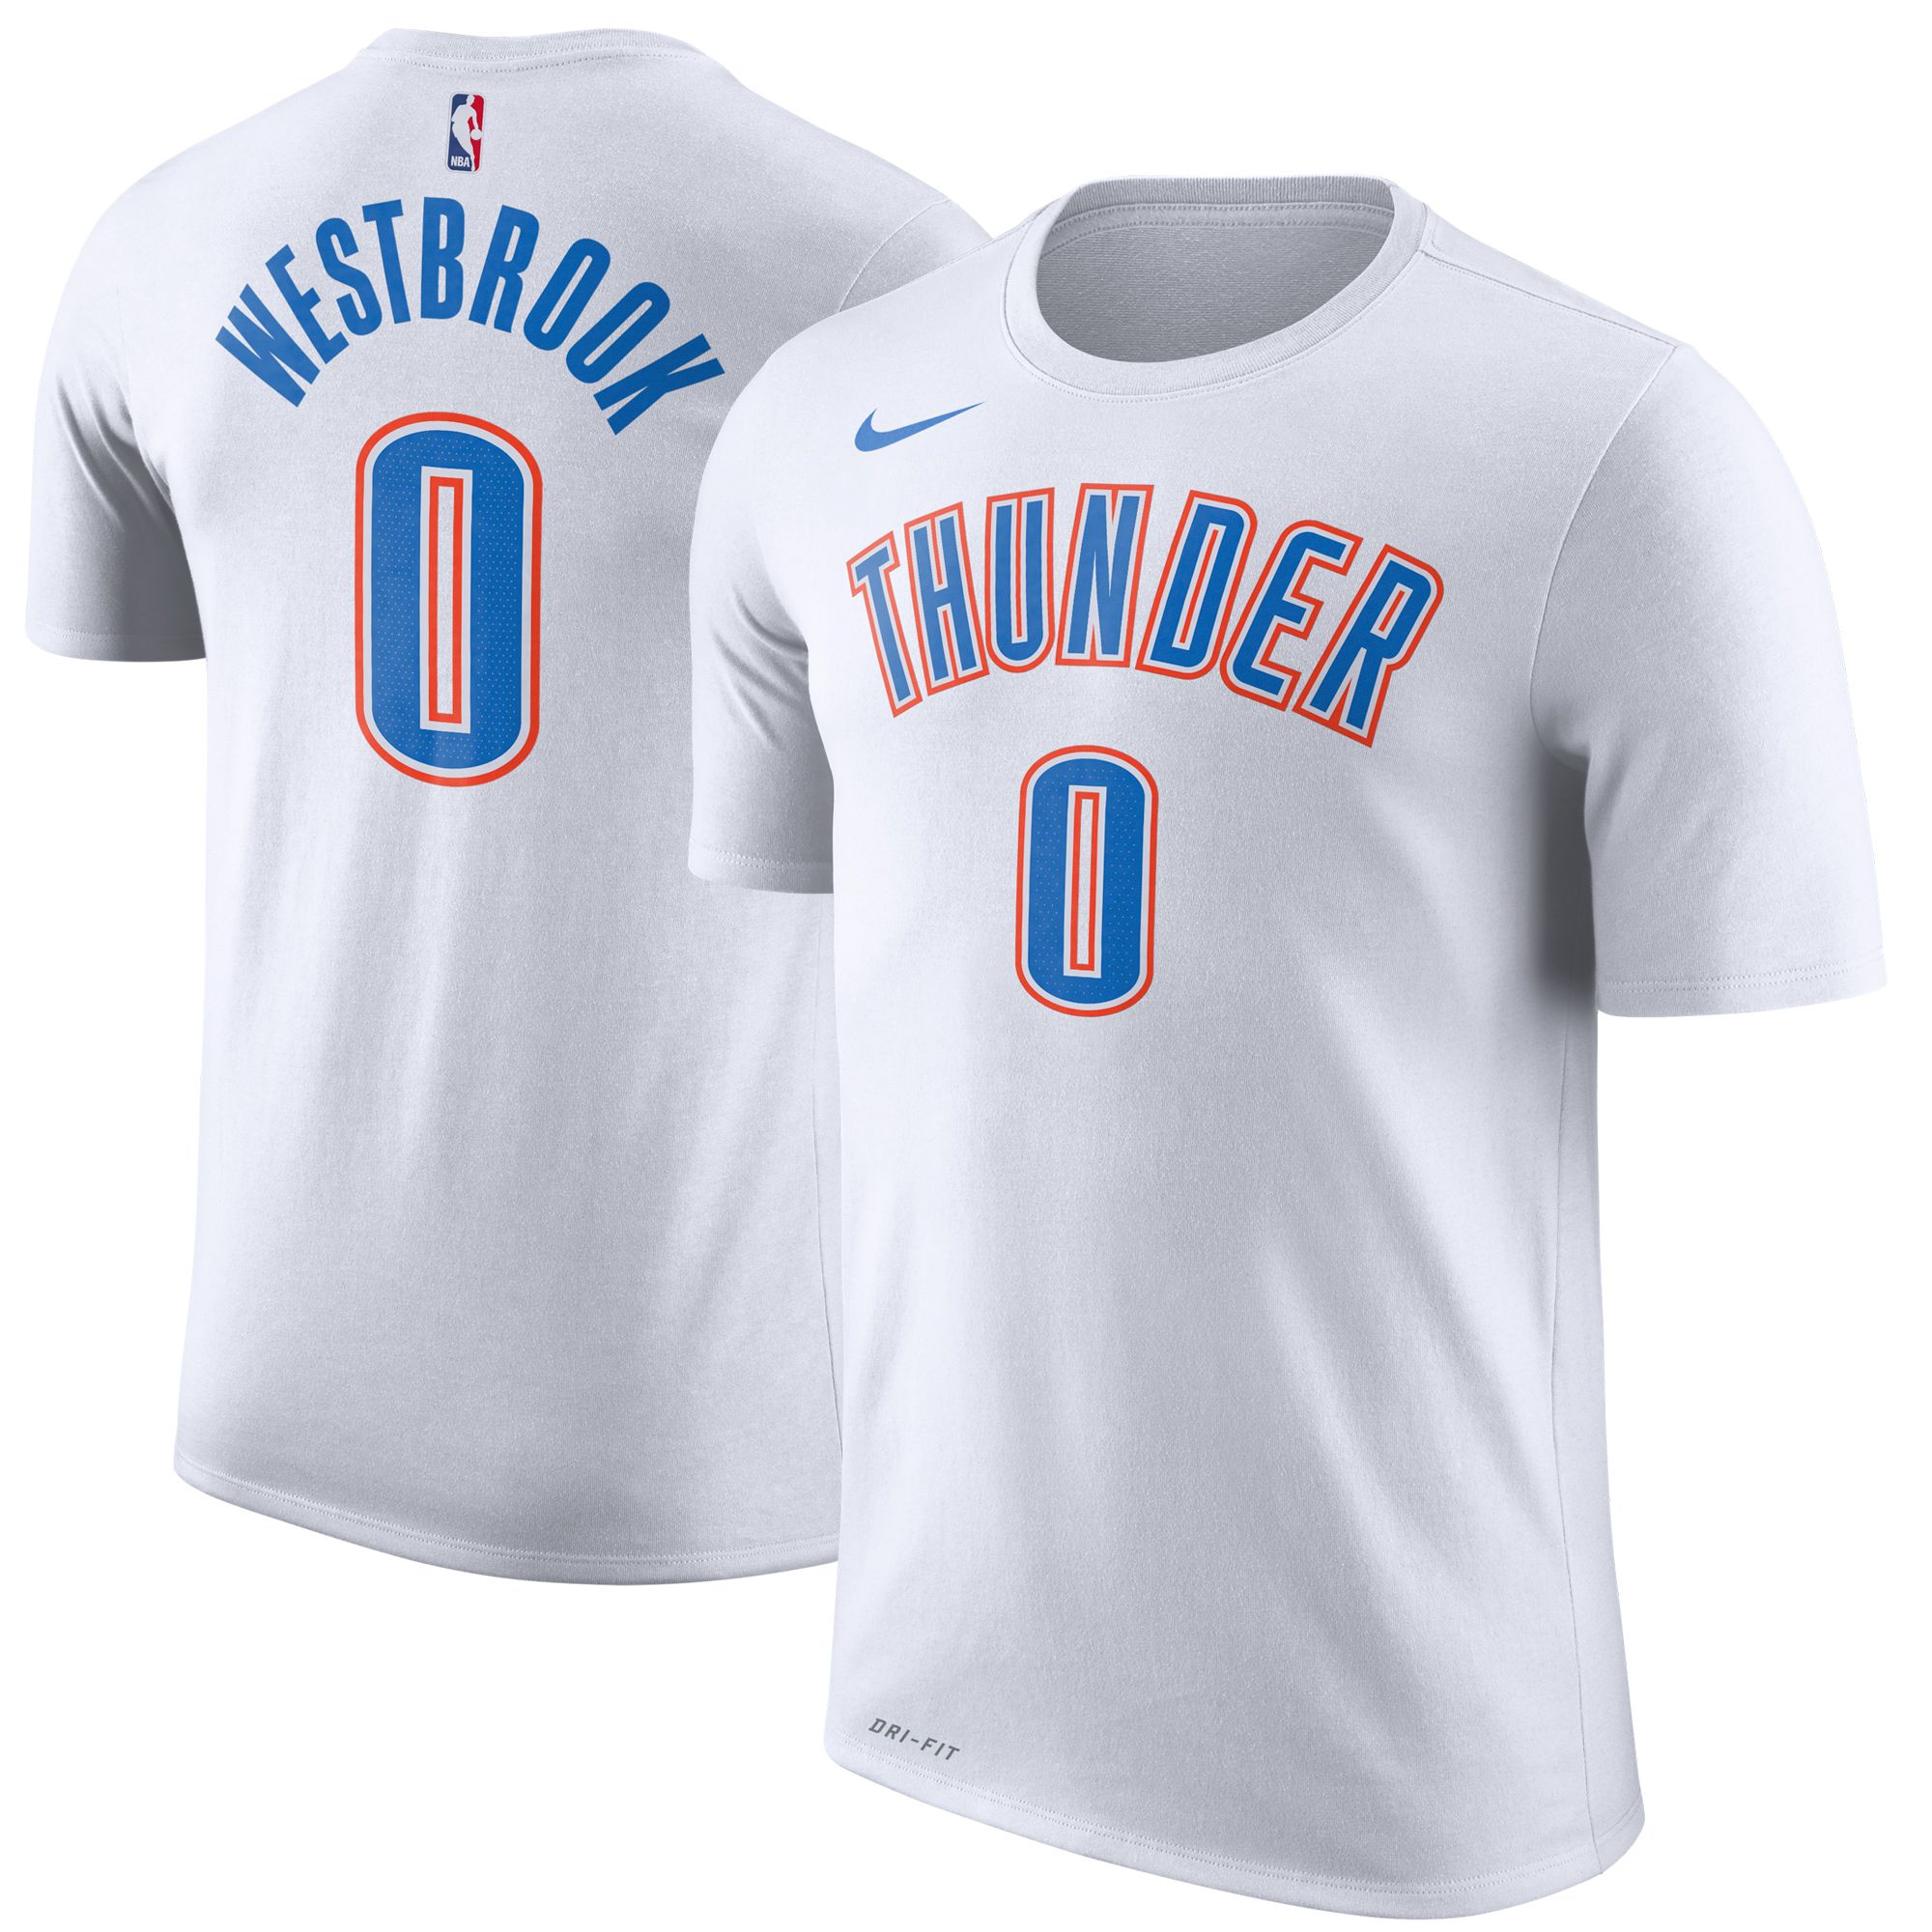 new arrival b56fc 964b8 Russell Westbrook Oklahoma City Thunder Nike Name & Number Performance  T-Shirt - White